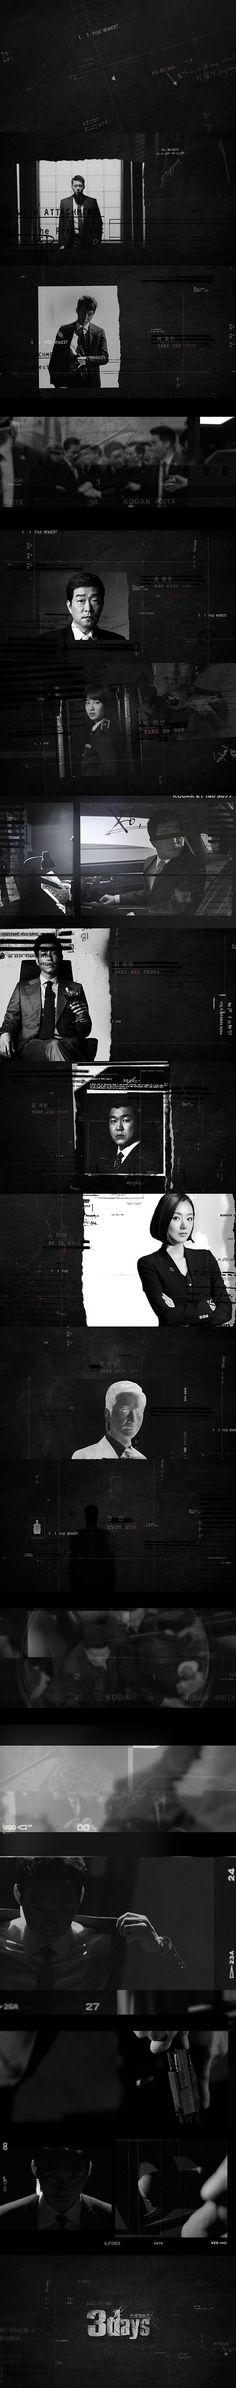 title sequence - motion graphics/ storyboards - styleframes | '3Days'( 쓰리데이즈 ) Opening Title: